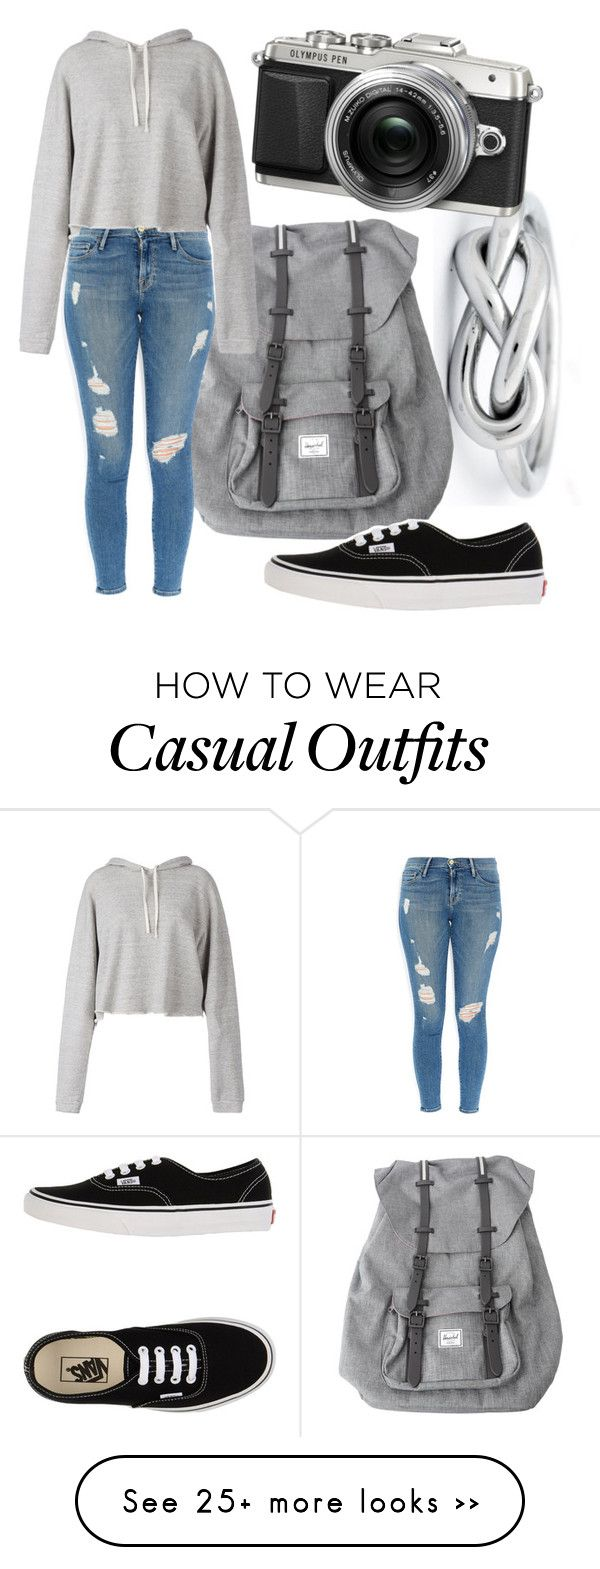 """Casual Photographer"" by thatonefabulouspotato on Polyvore featuring Herschel, Frame Denim, Faith Connexion and Vans"